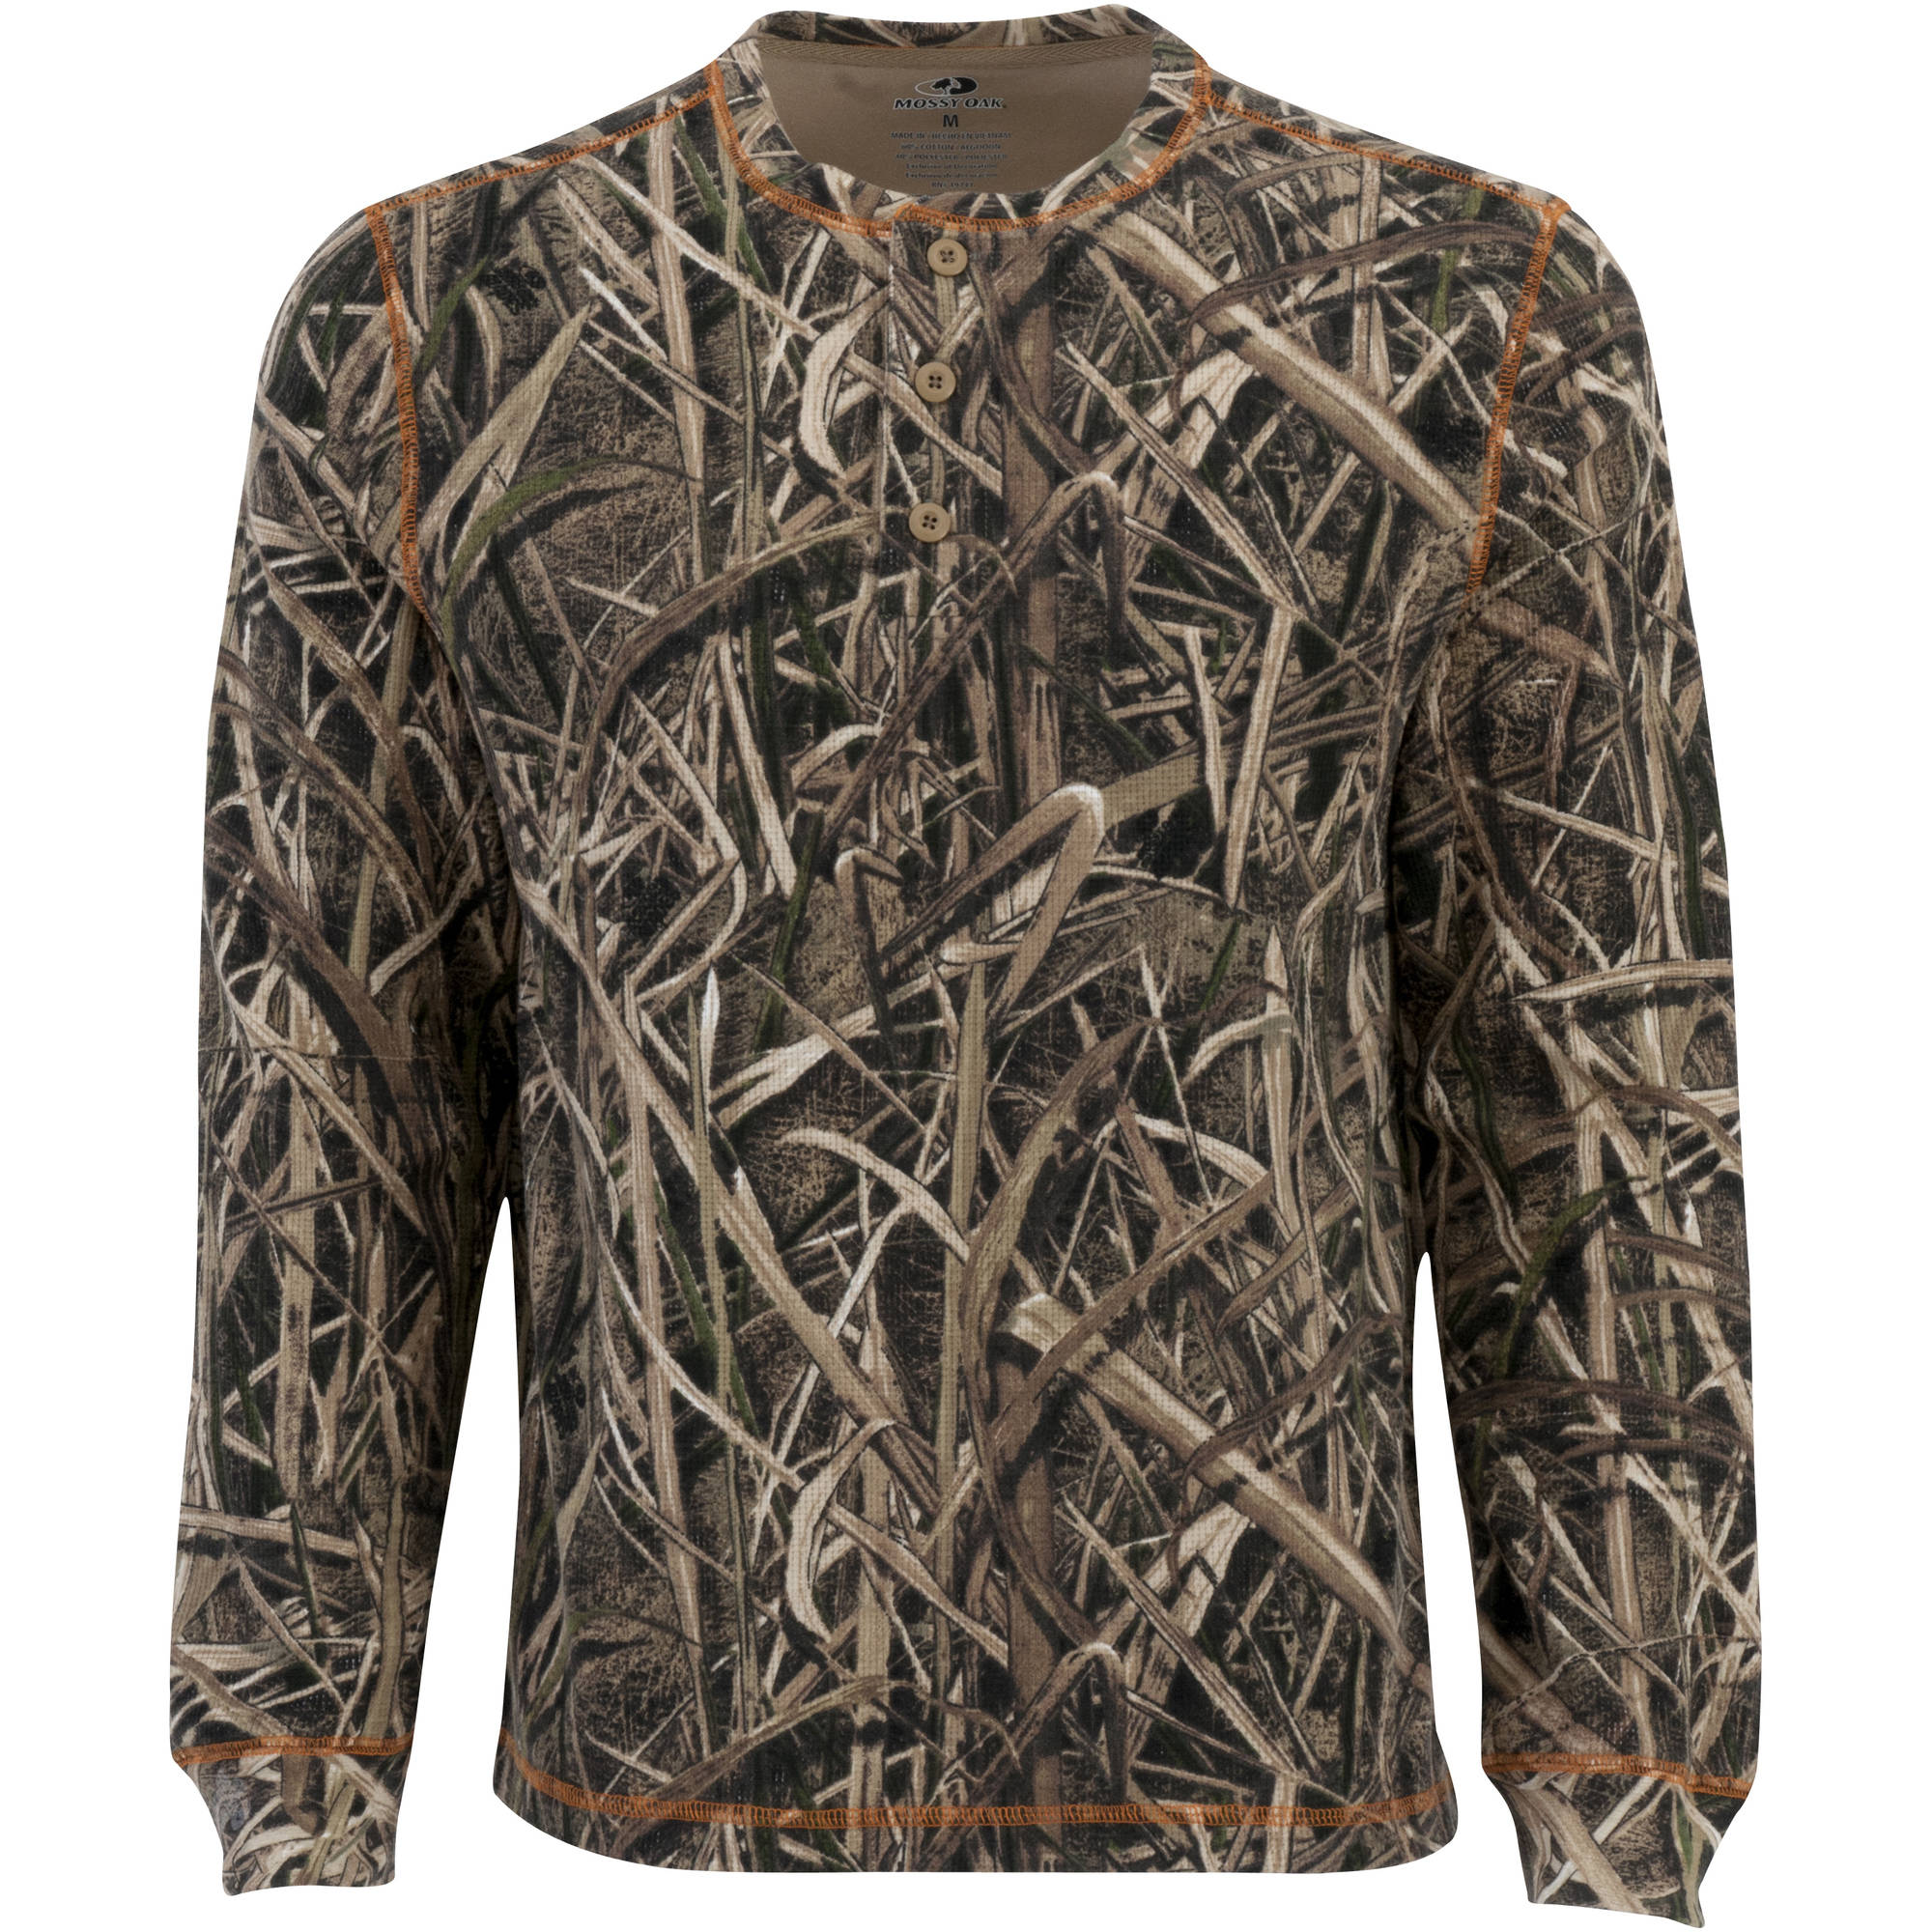 Mossy Oak Men's Long Sleeve Thermal Henley, Multiple Patterns